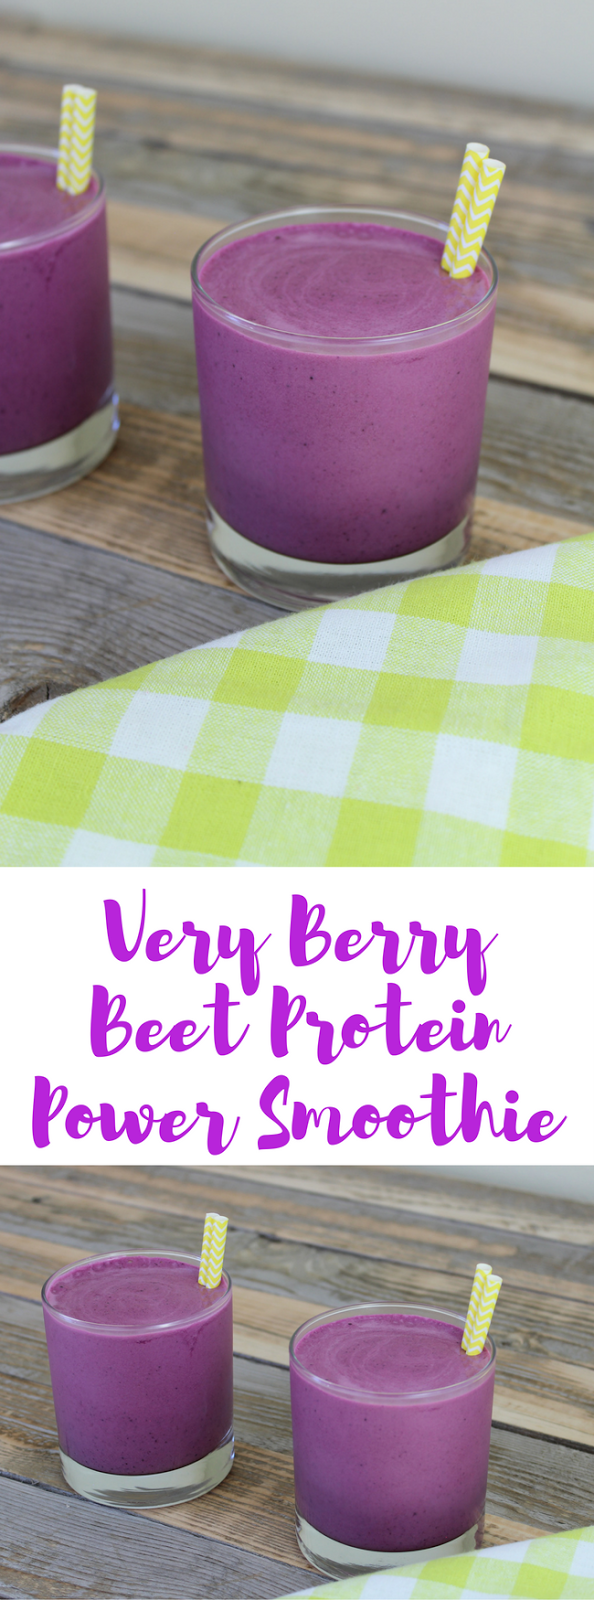 Very Berry Beet Protein Power Smoothie